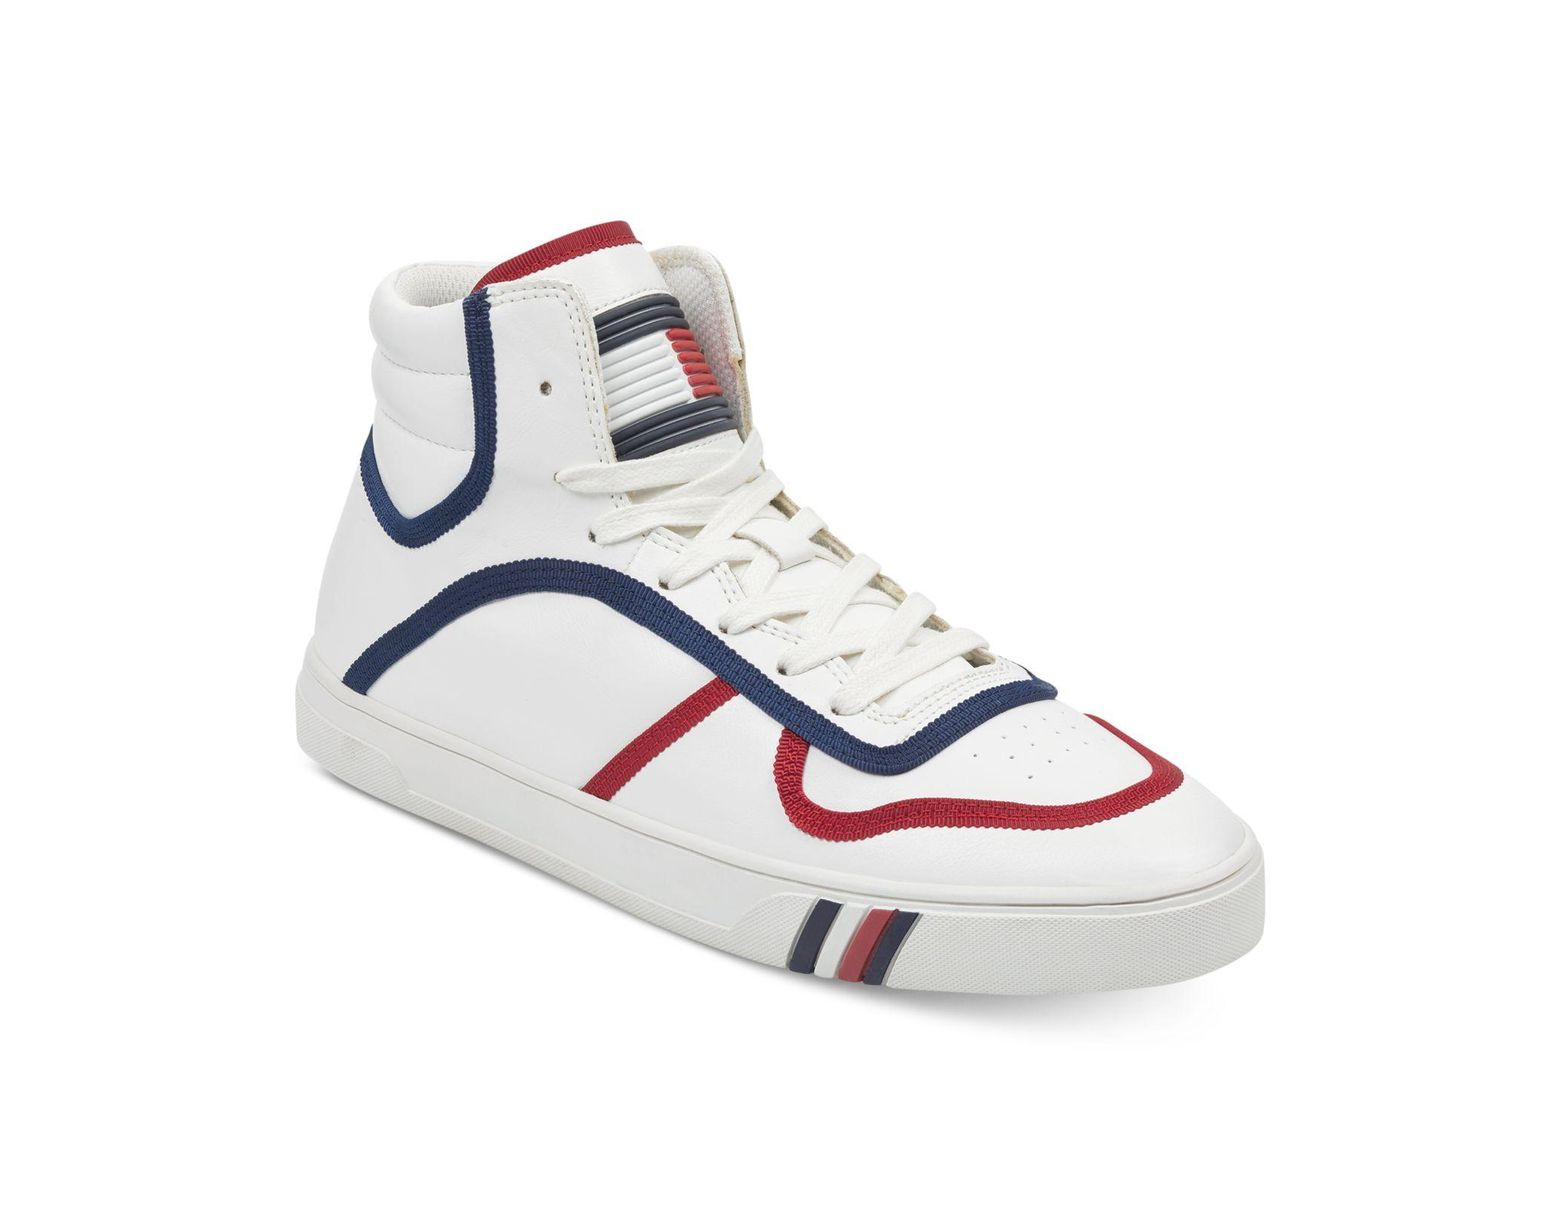 a8cd7a0a Tommy Hilfiger Japan High Top Sneakers in White for Men - Lyst